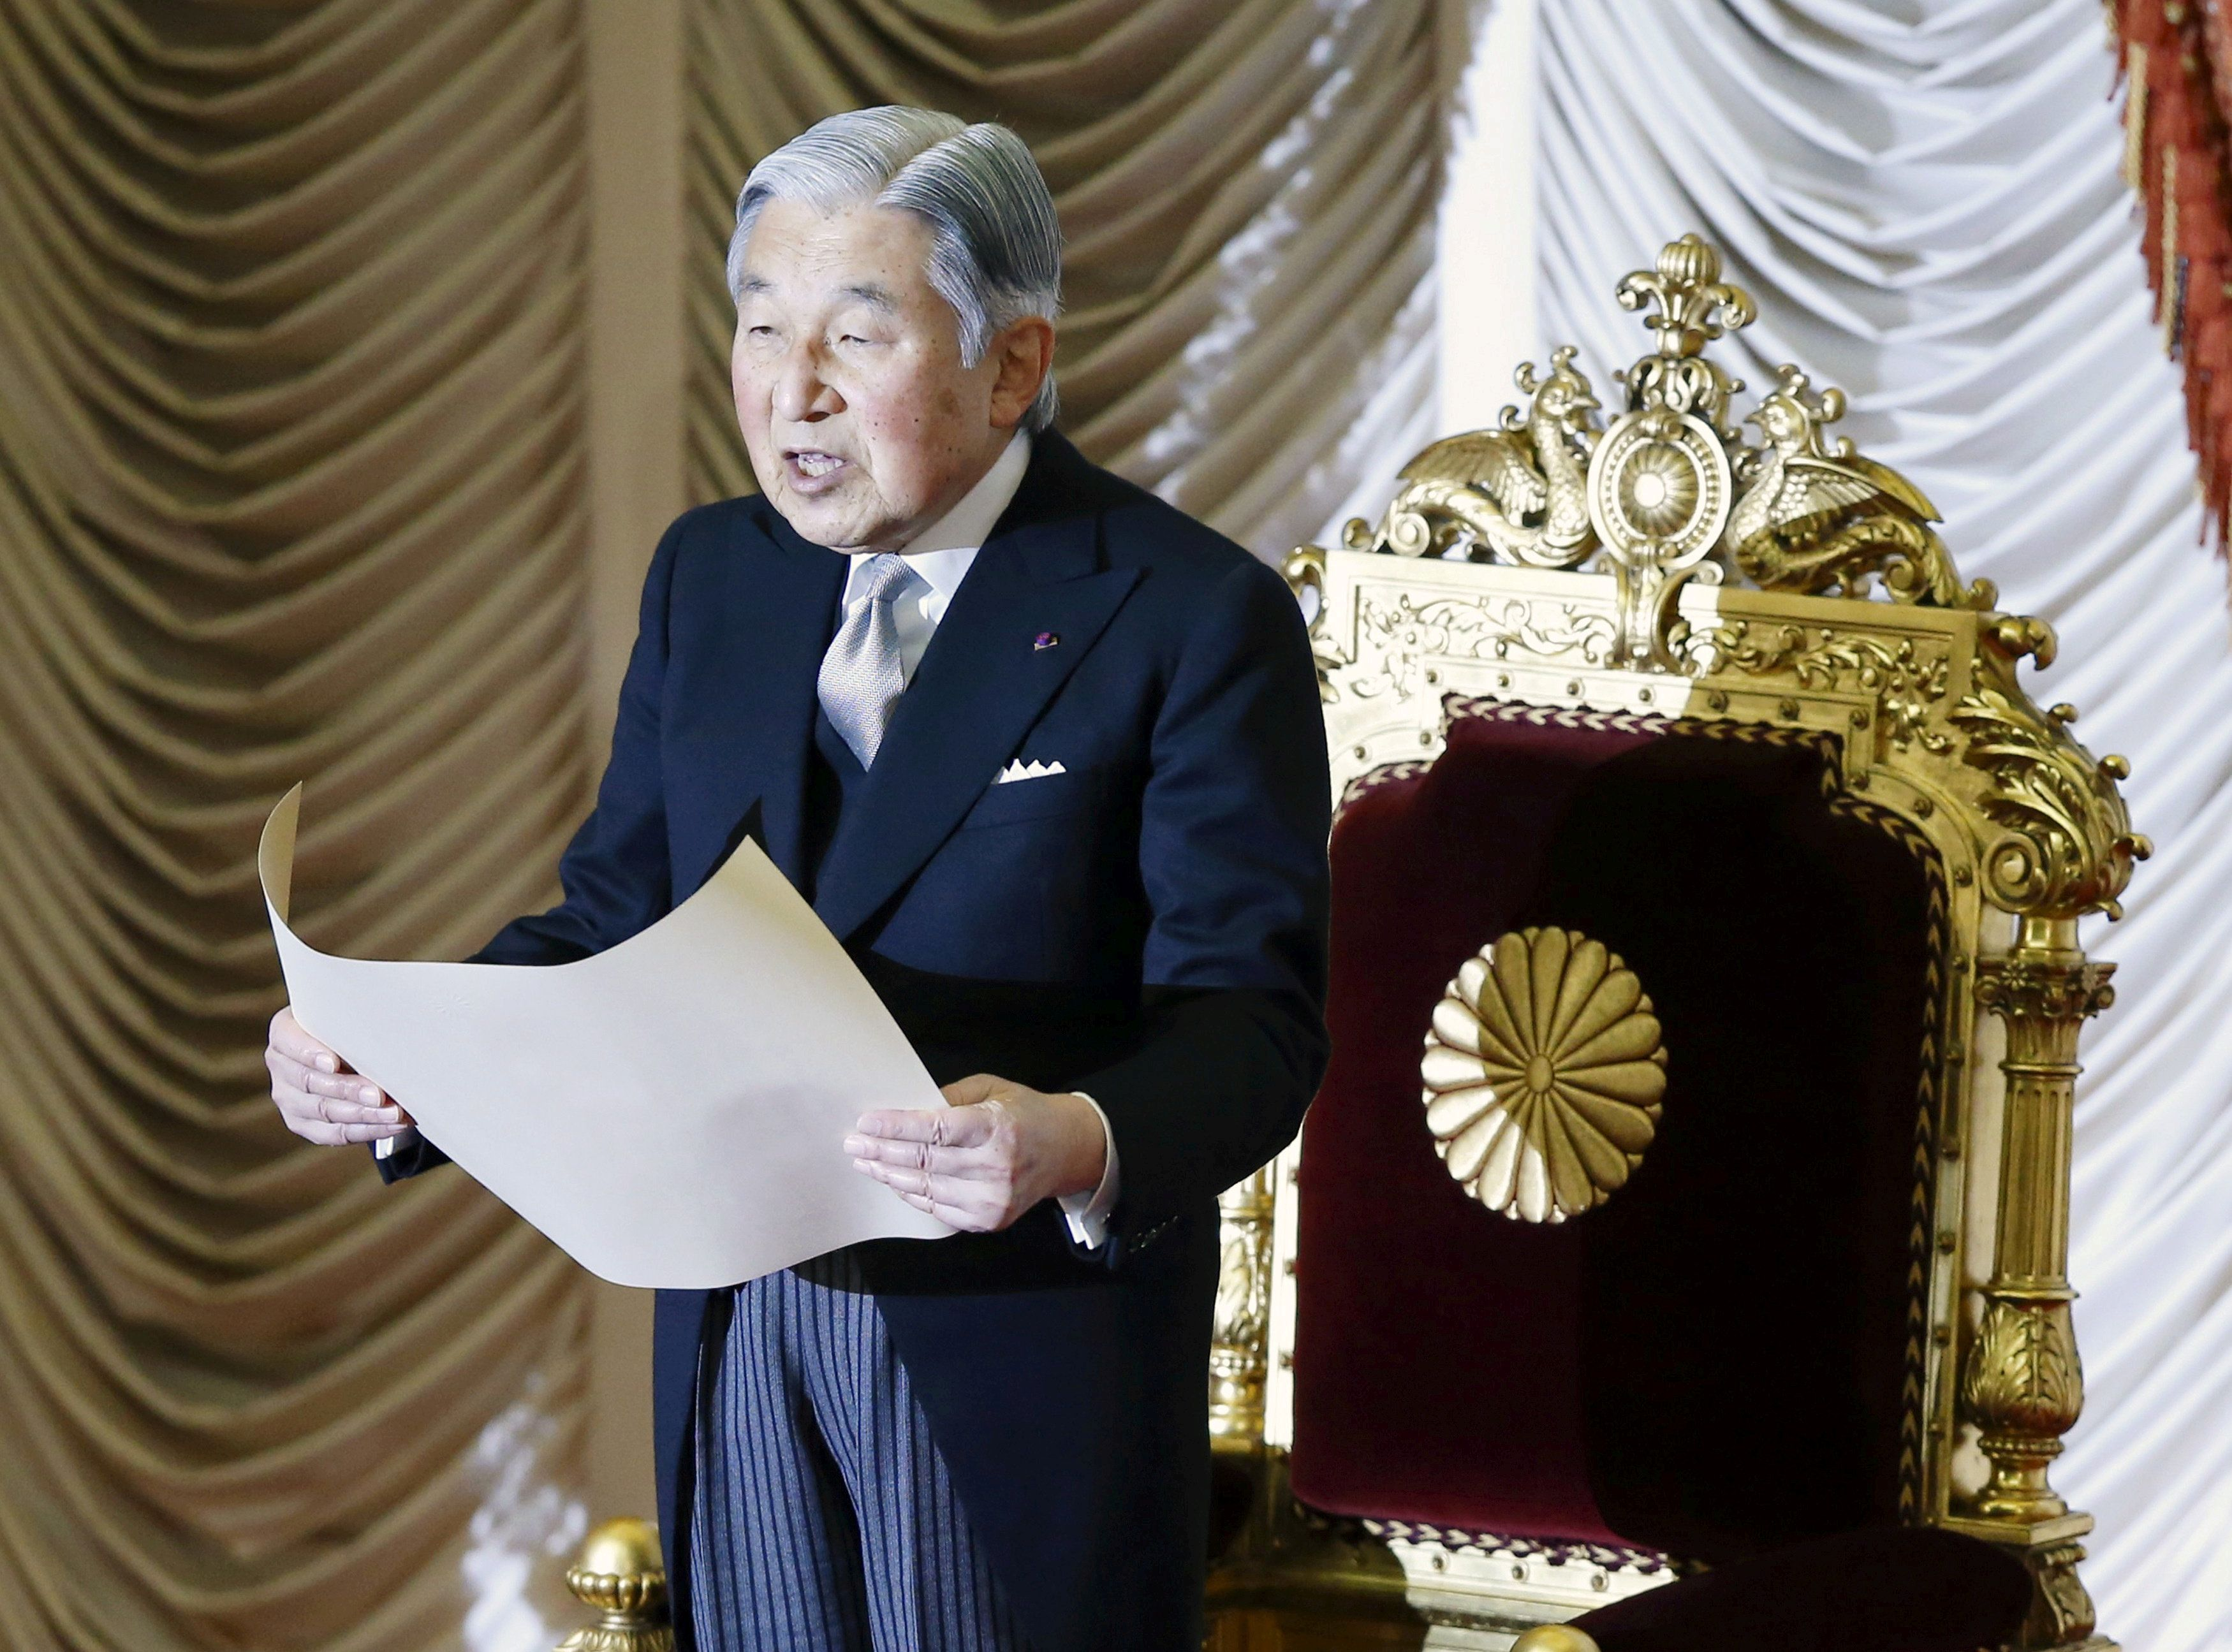 Japan's Emperor Akihito declares the opening of the ordinary session of parliament in Tokyo, Japan, January 4, 2016. REUTERS/Toru Hanai/File photo